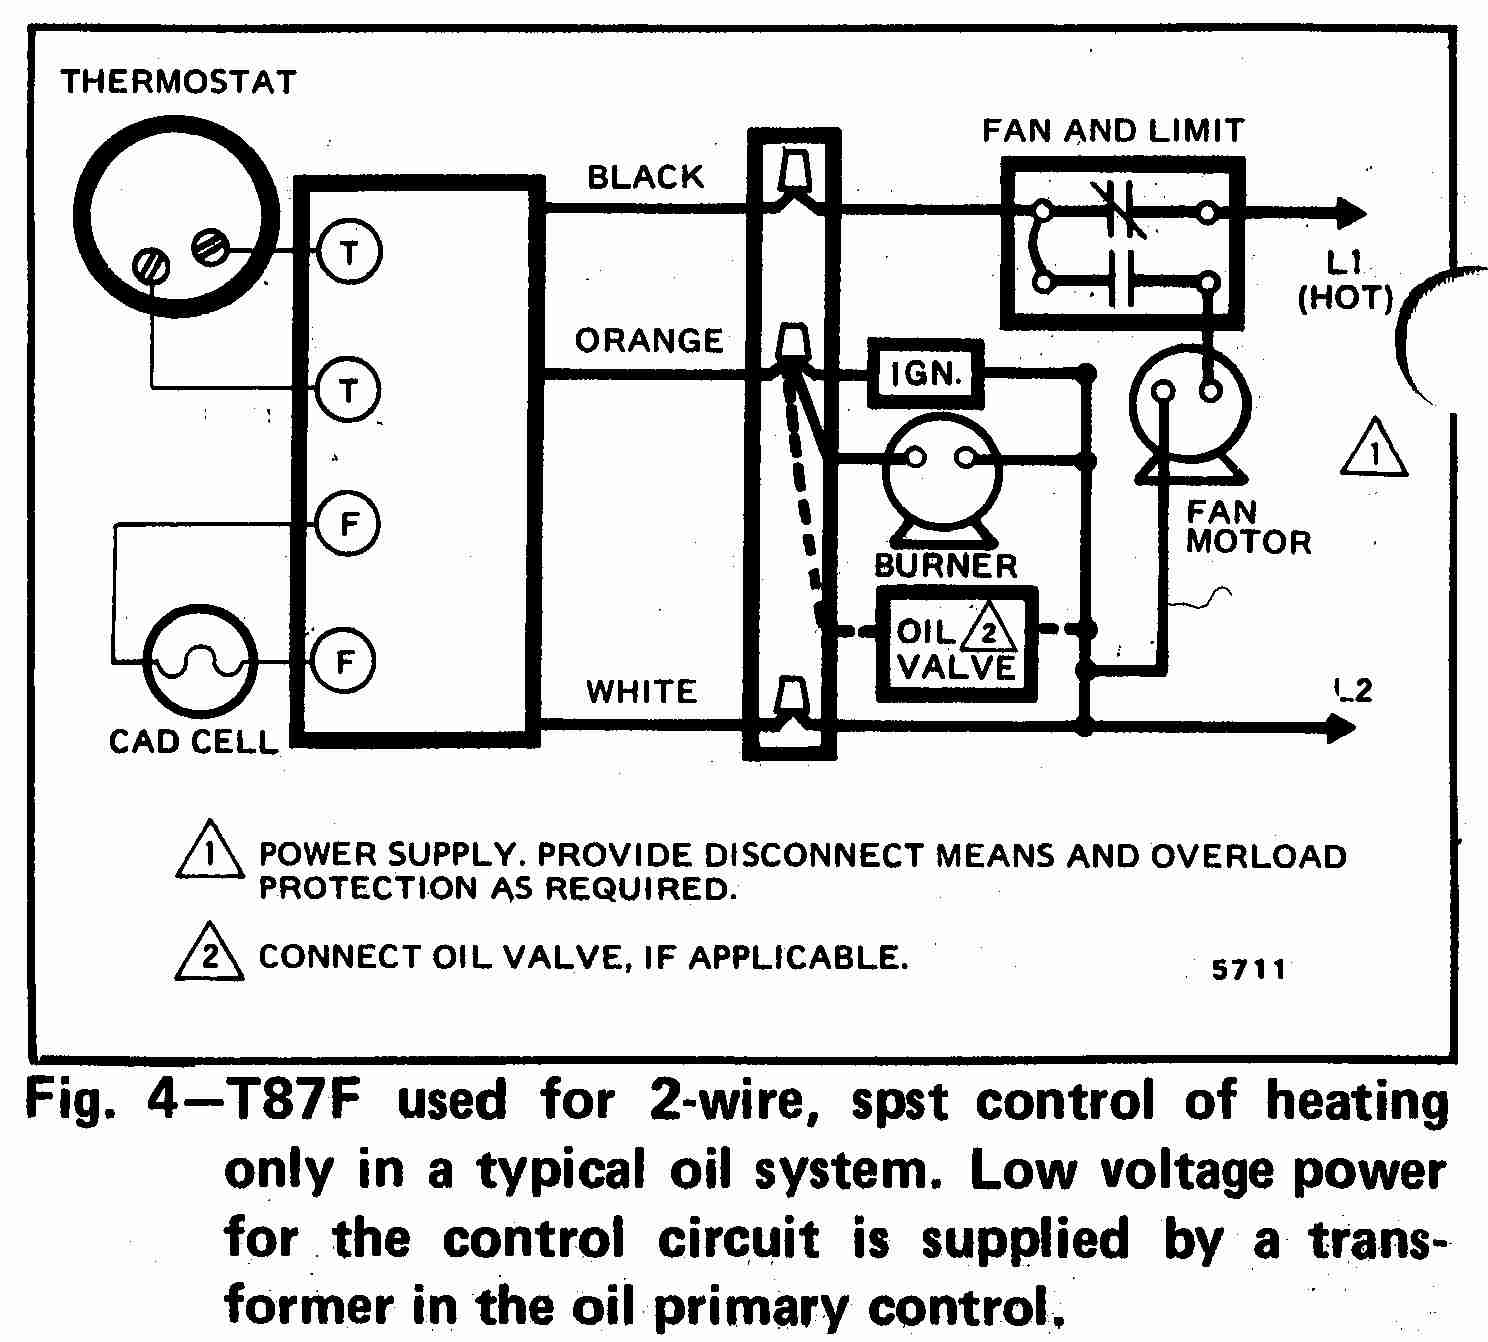 TT_T87F_0002_2W_DJF room thermostat wiring diagrams for hvac systems imit boiler thermostat wiring diagram at soozxer.org